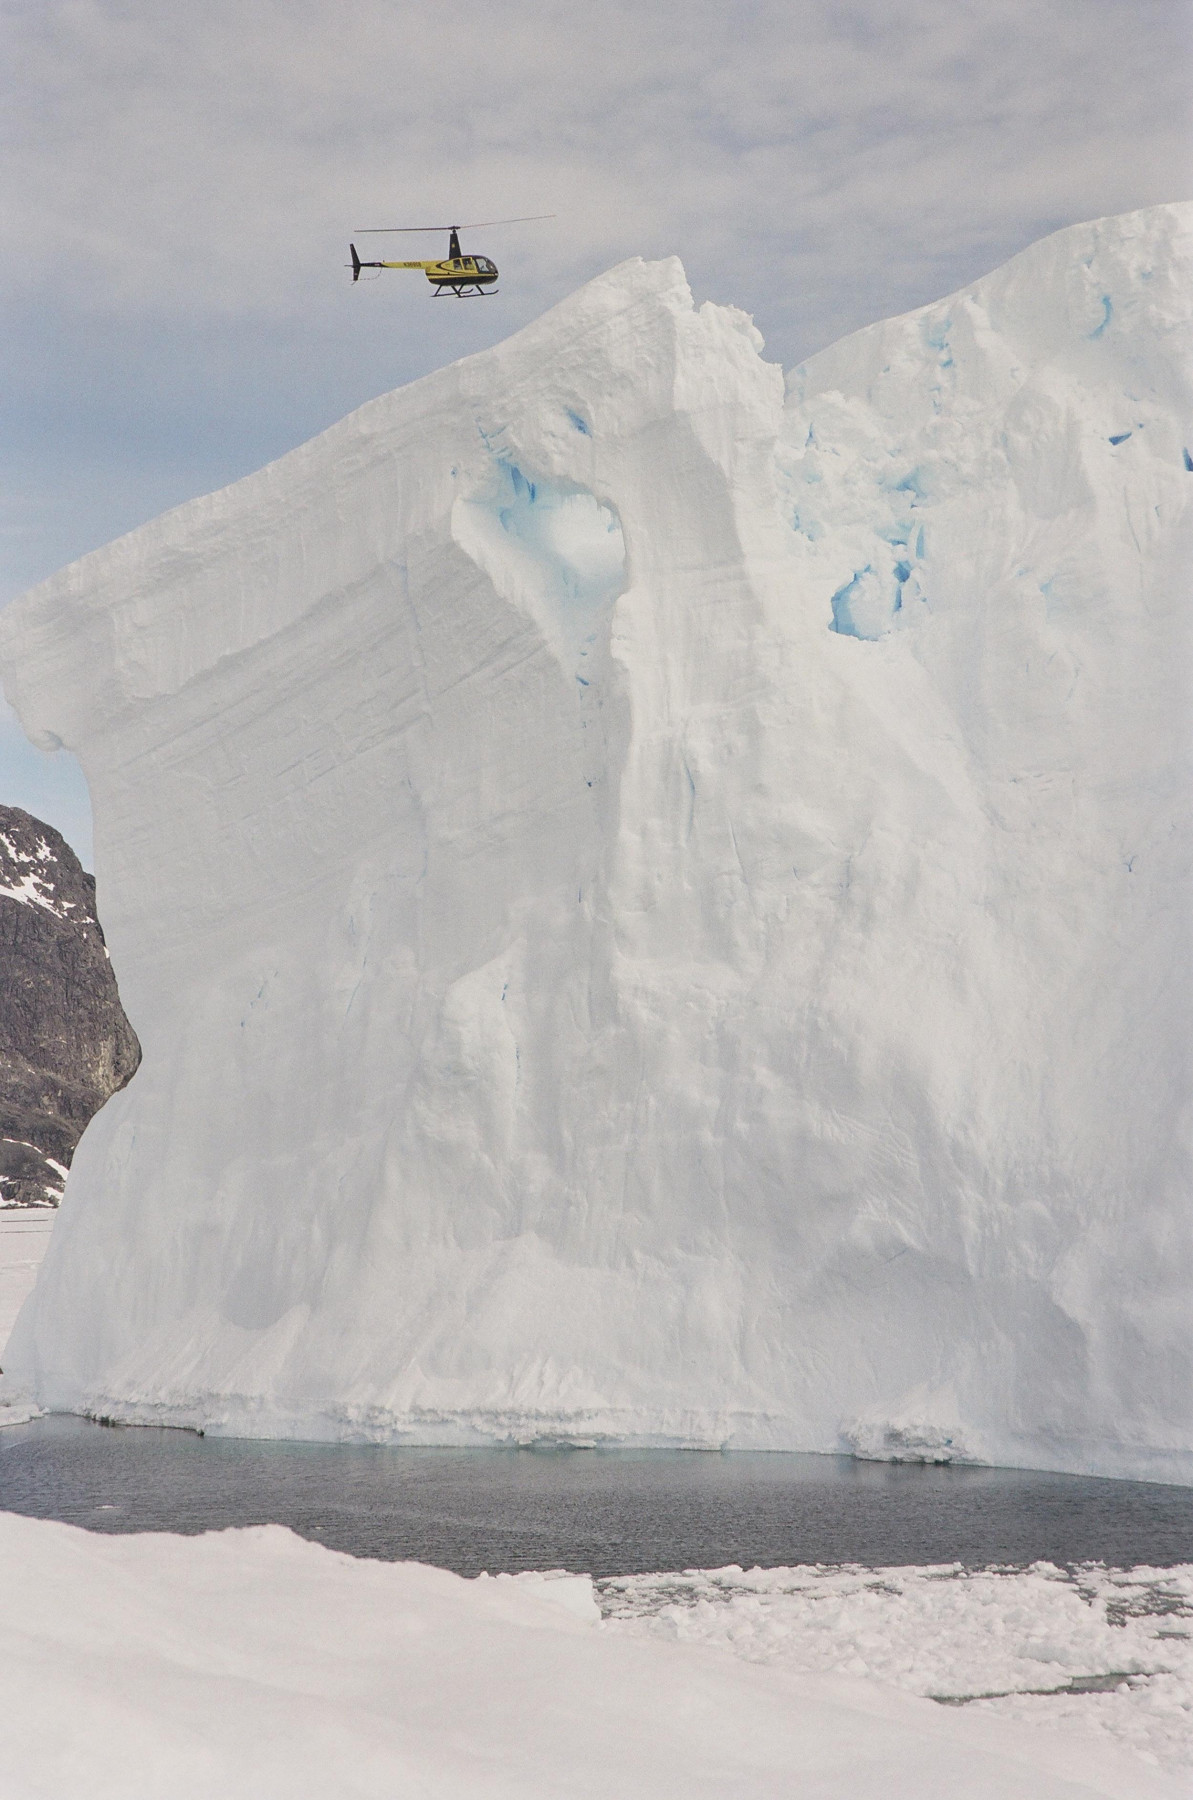 Helicopter over iceberg